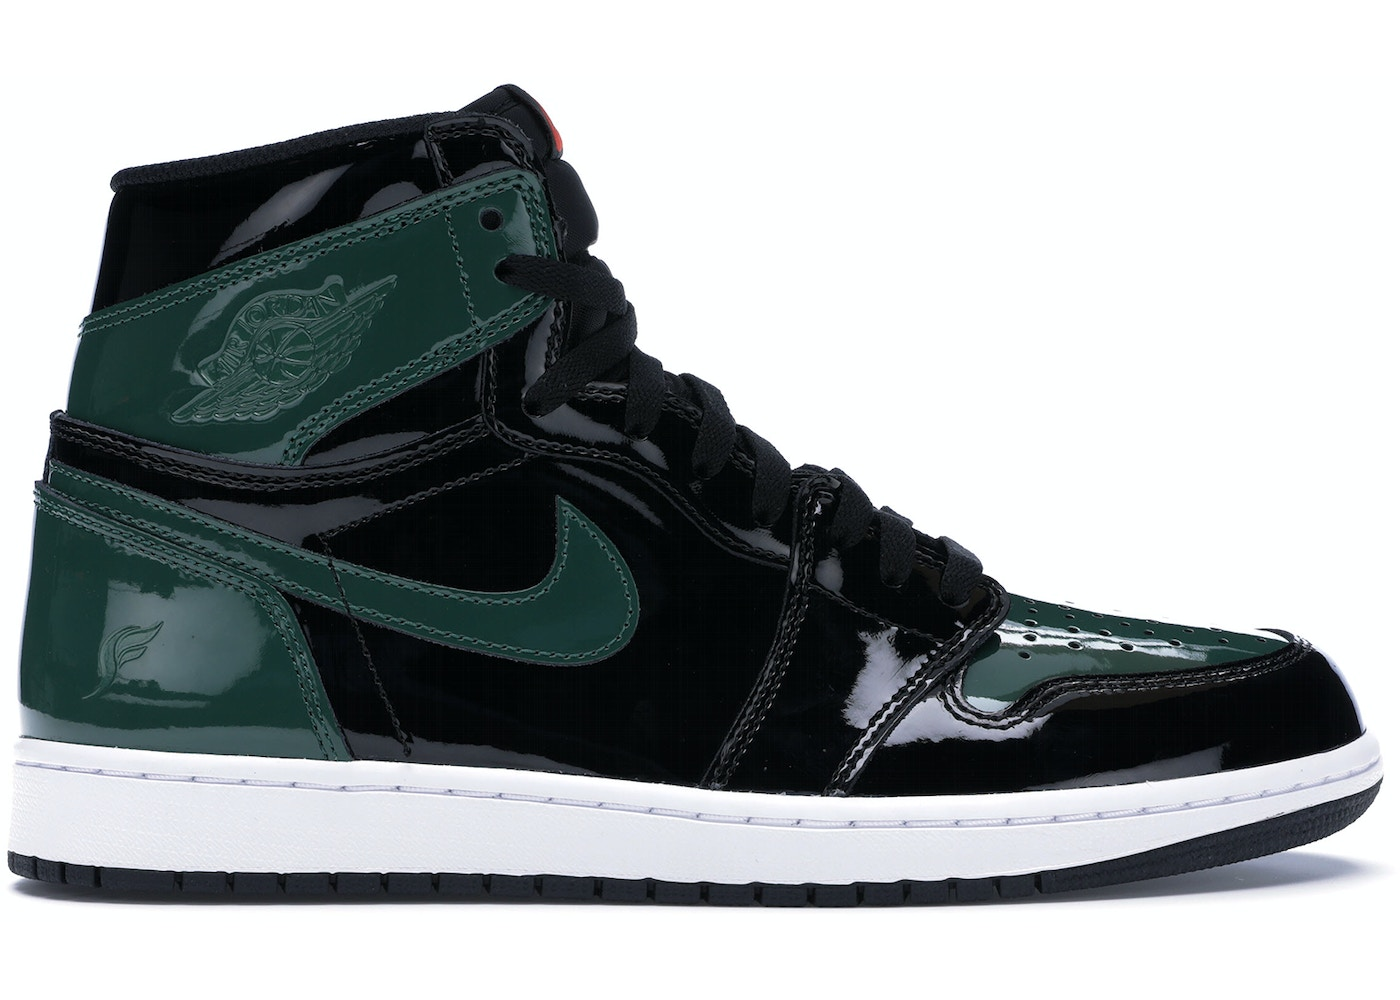 hot sale online 2983d 36999 Air Jordan Shoes - Average Sale Price